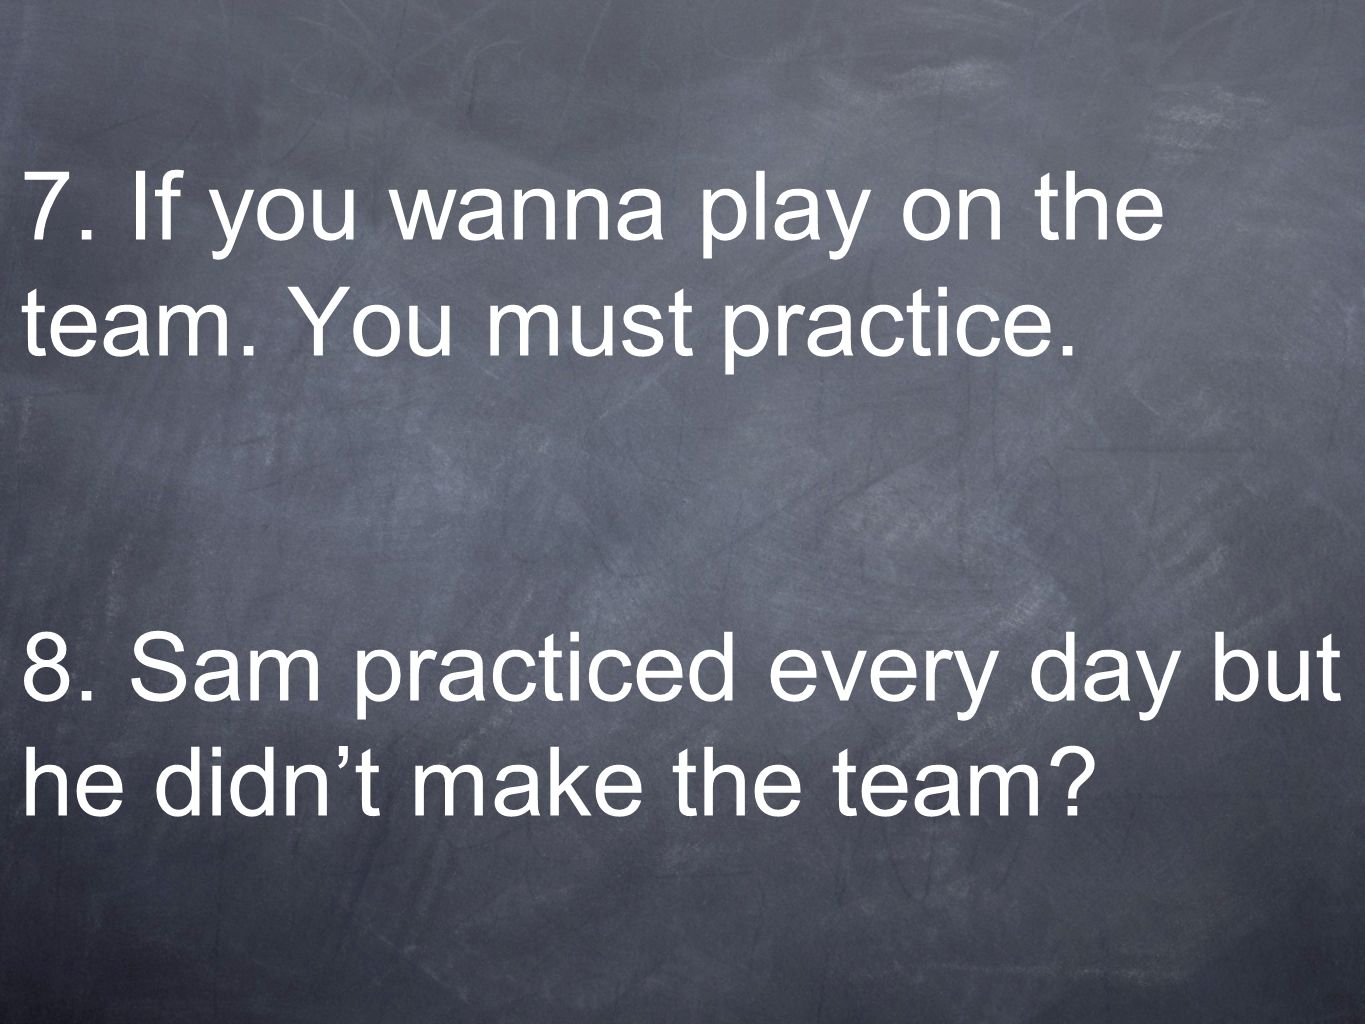 7.If you wanna play on the team. You must practice.